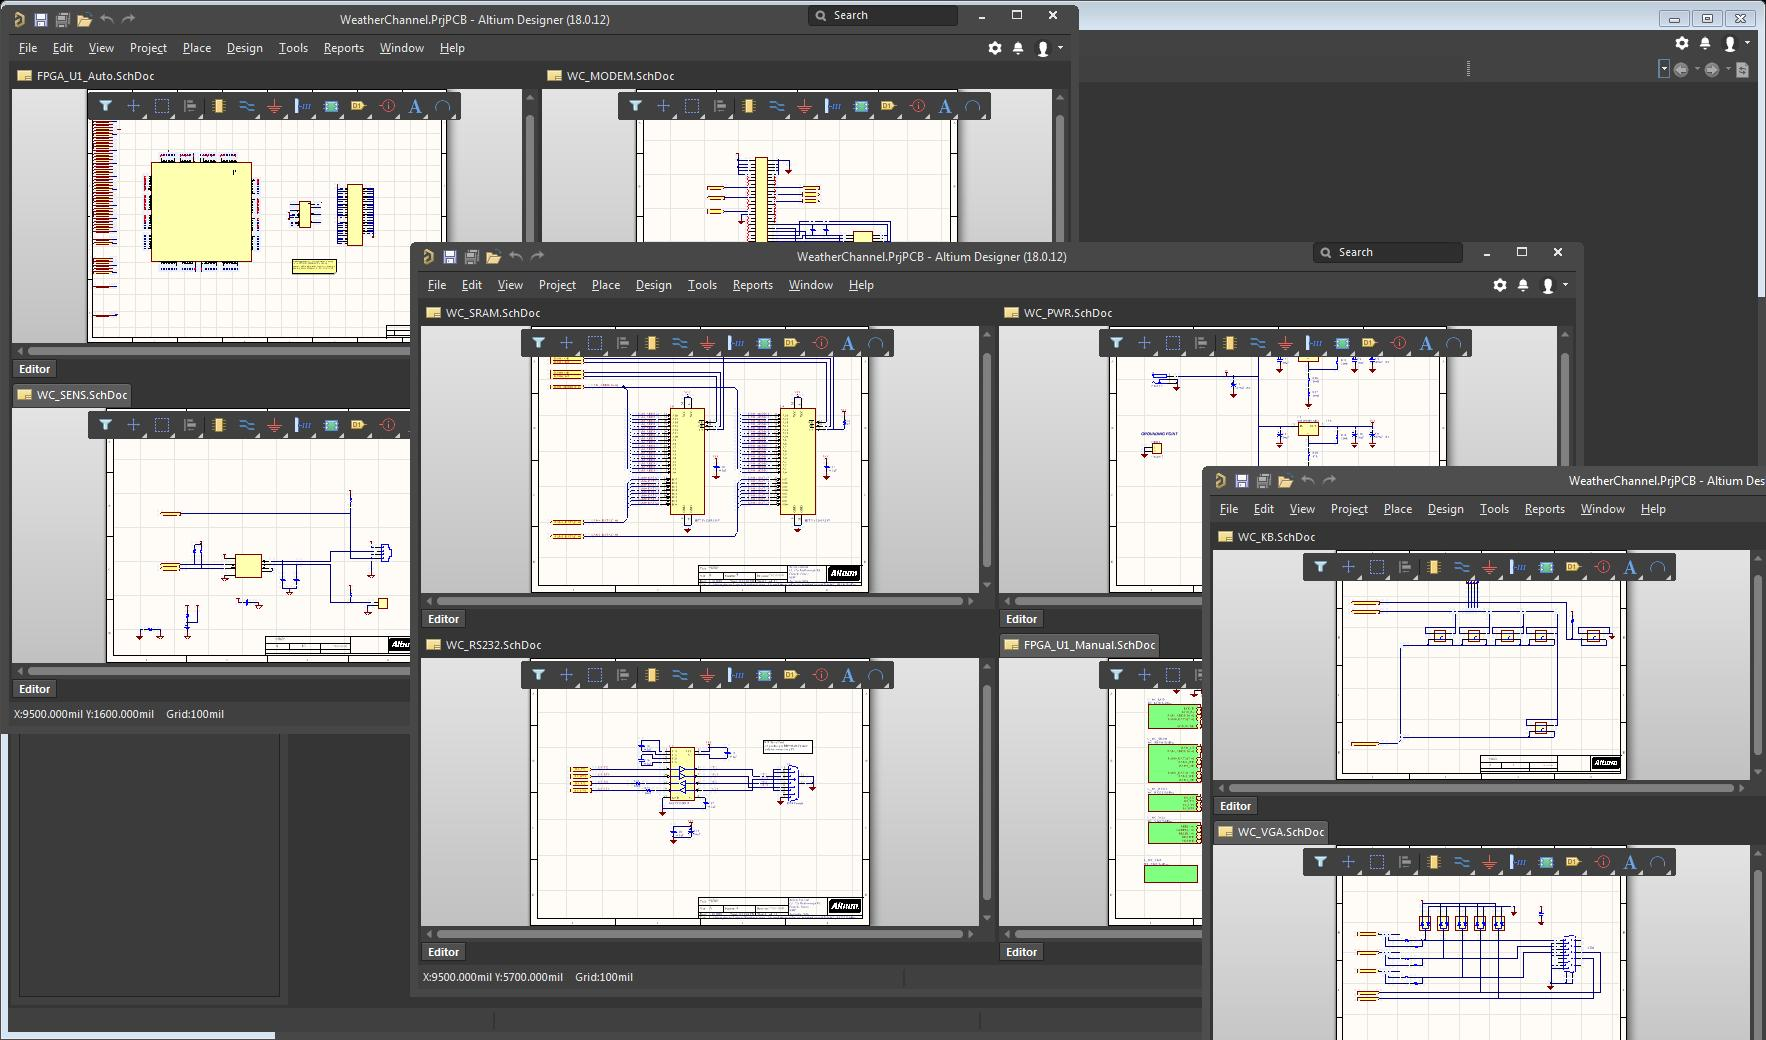 Screenshot of multiple schematic windows open in AD18 for supply chain management